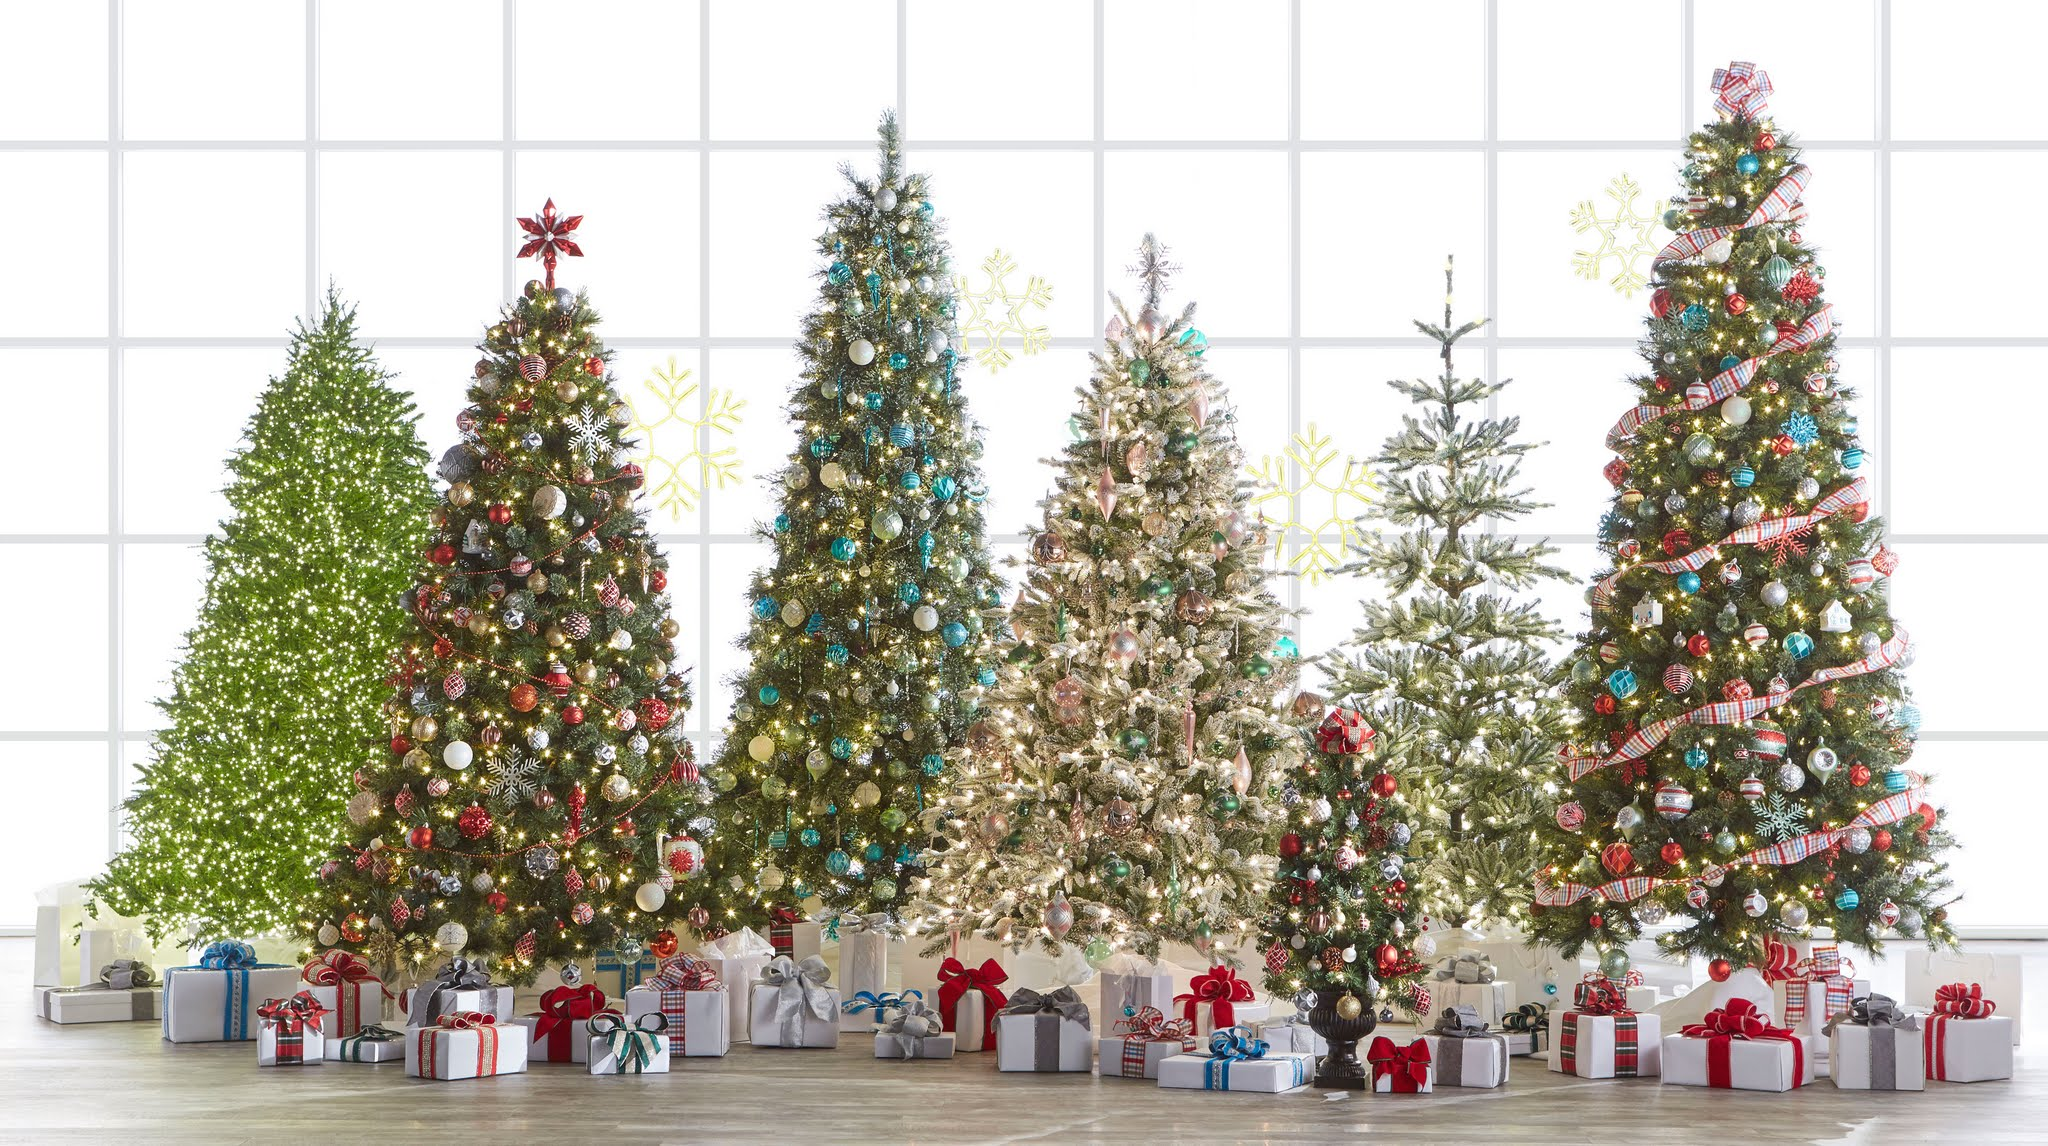 Martha Stewart Christmas Trees 2020 The Martha Stewart Blog : Blog Archive : My Holiday Collection at